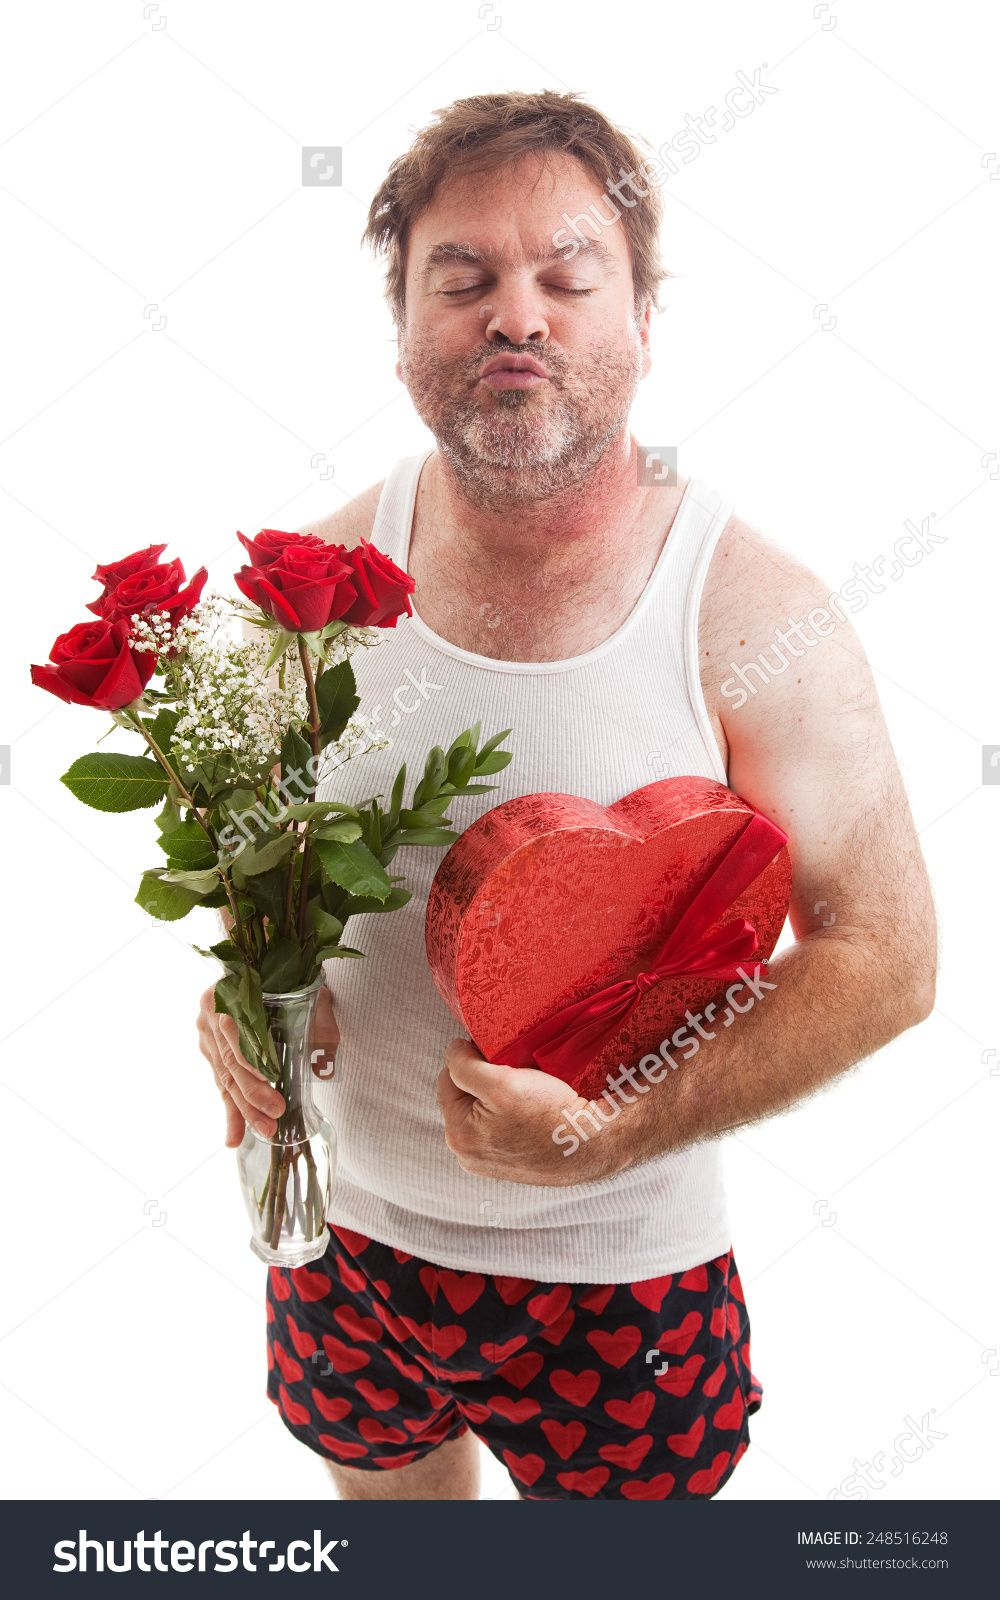 stock-photo-scruffy-middle-aged-man-in-his-underwear-with-flowers, Ideas